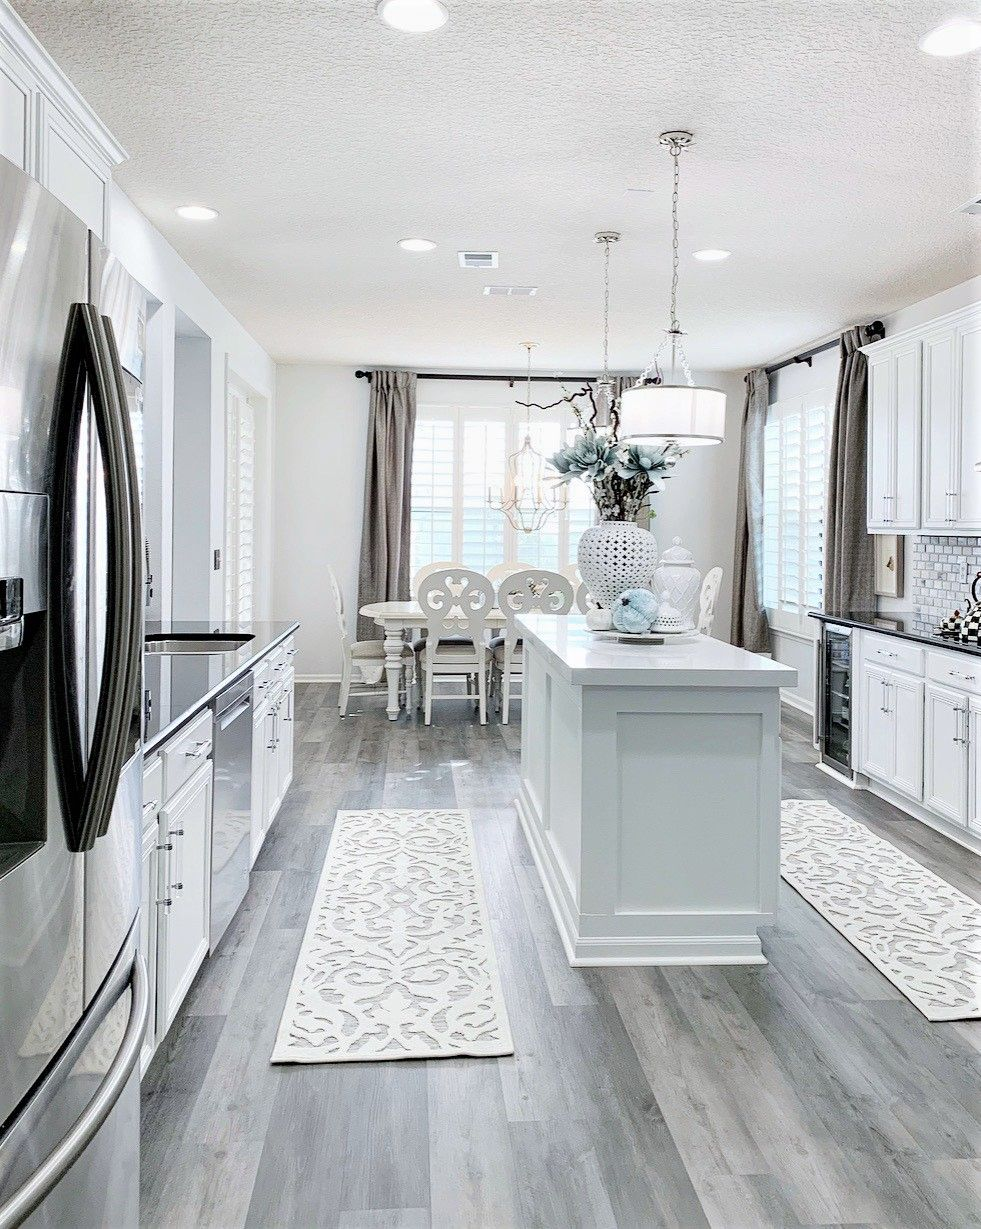 Finally The Time Has Come Our Kitchen Is Finally Completed This Tile Is Responsible For The Big Change For The In 2020 Grey Kitchen Floor Grey Flooring Floor Design